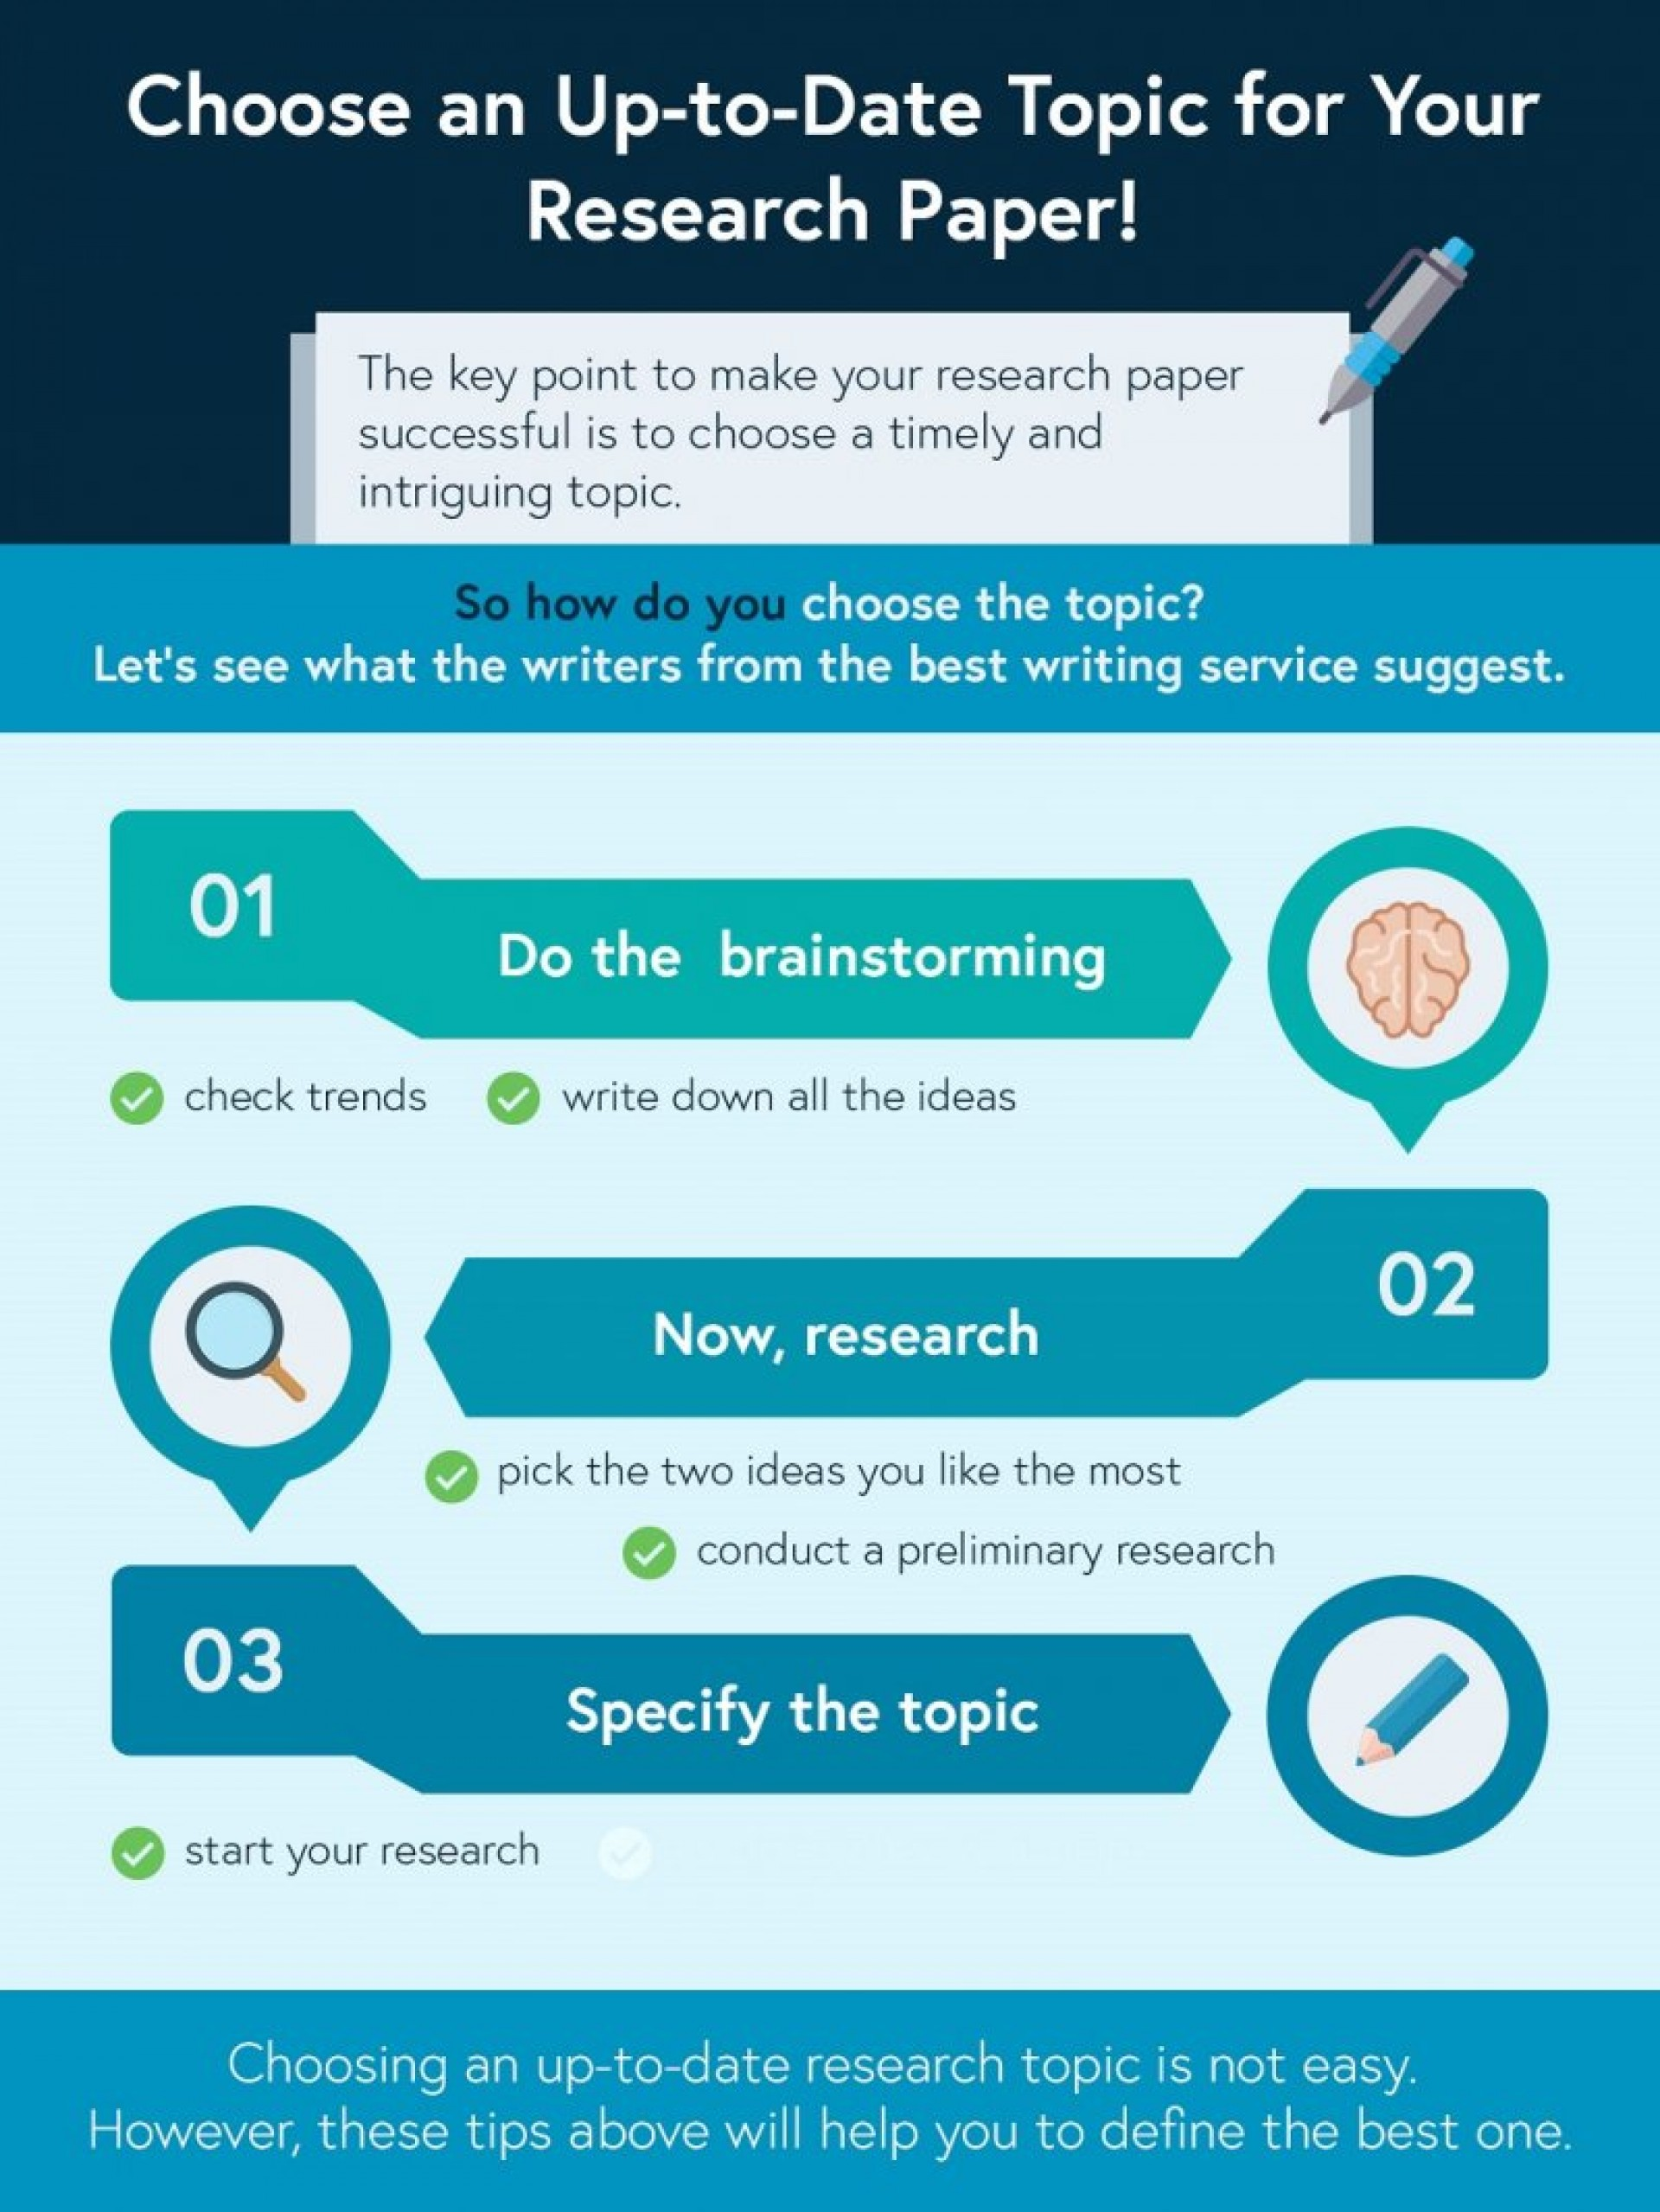 006 Research Paper Infographic Writing Dreaded Service Services In India Online Chennai 1920